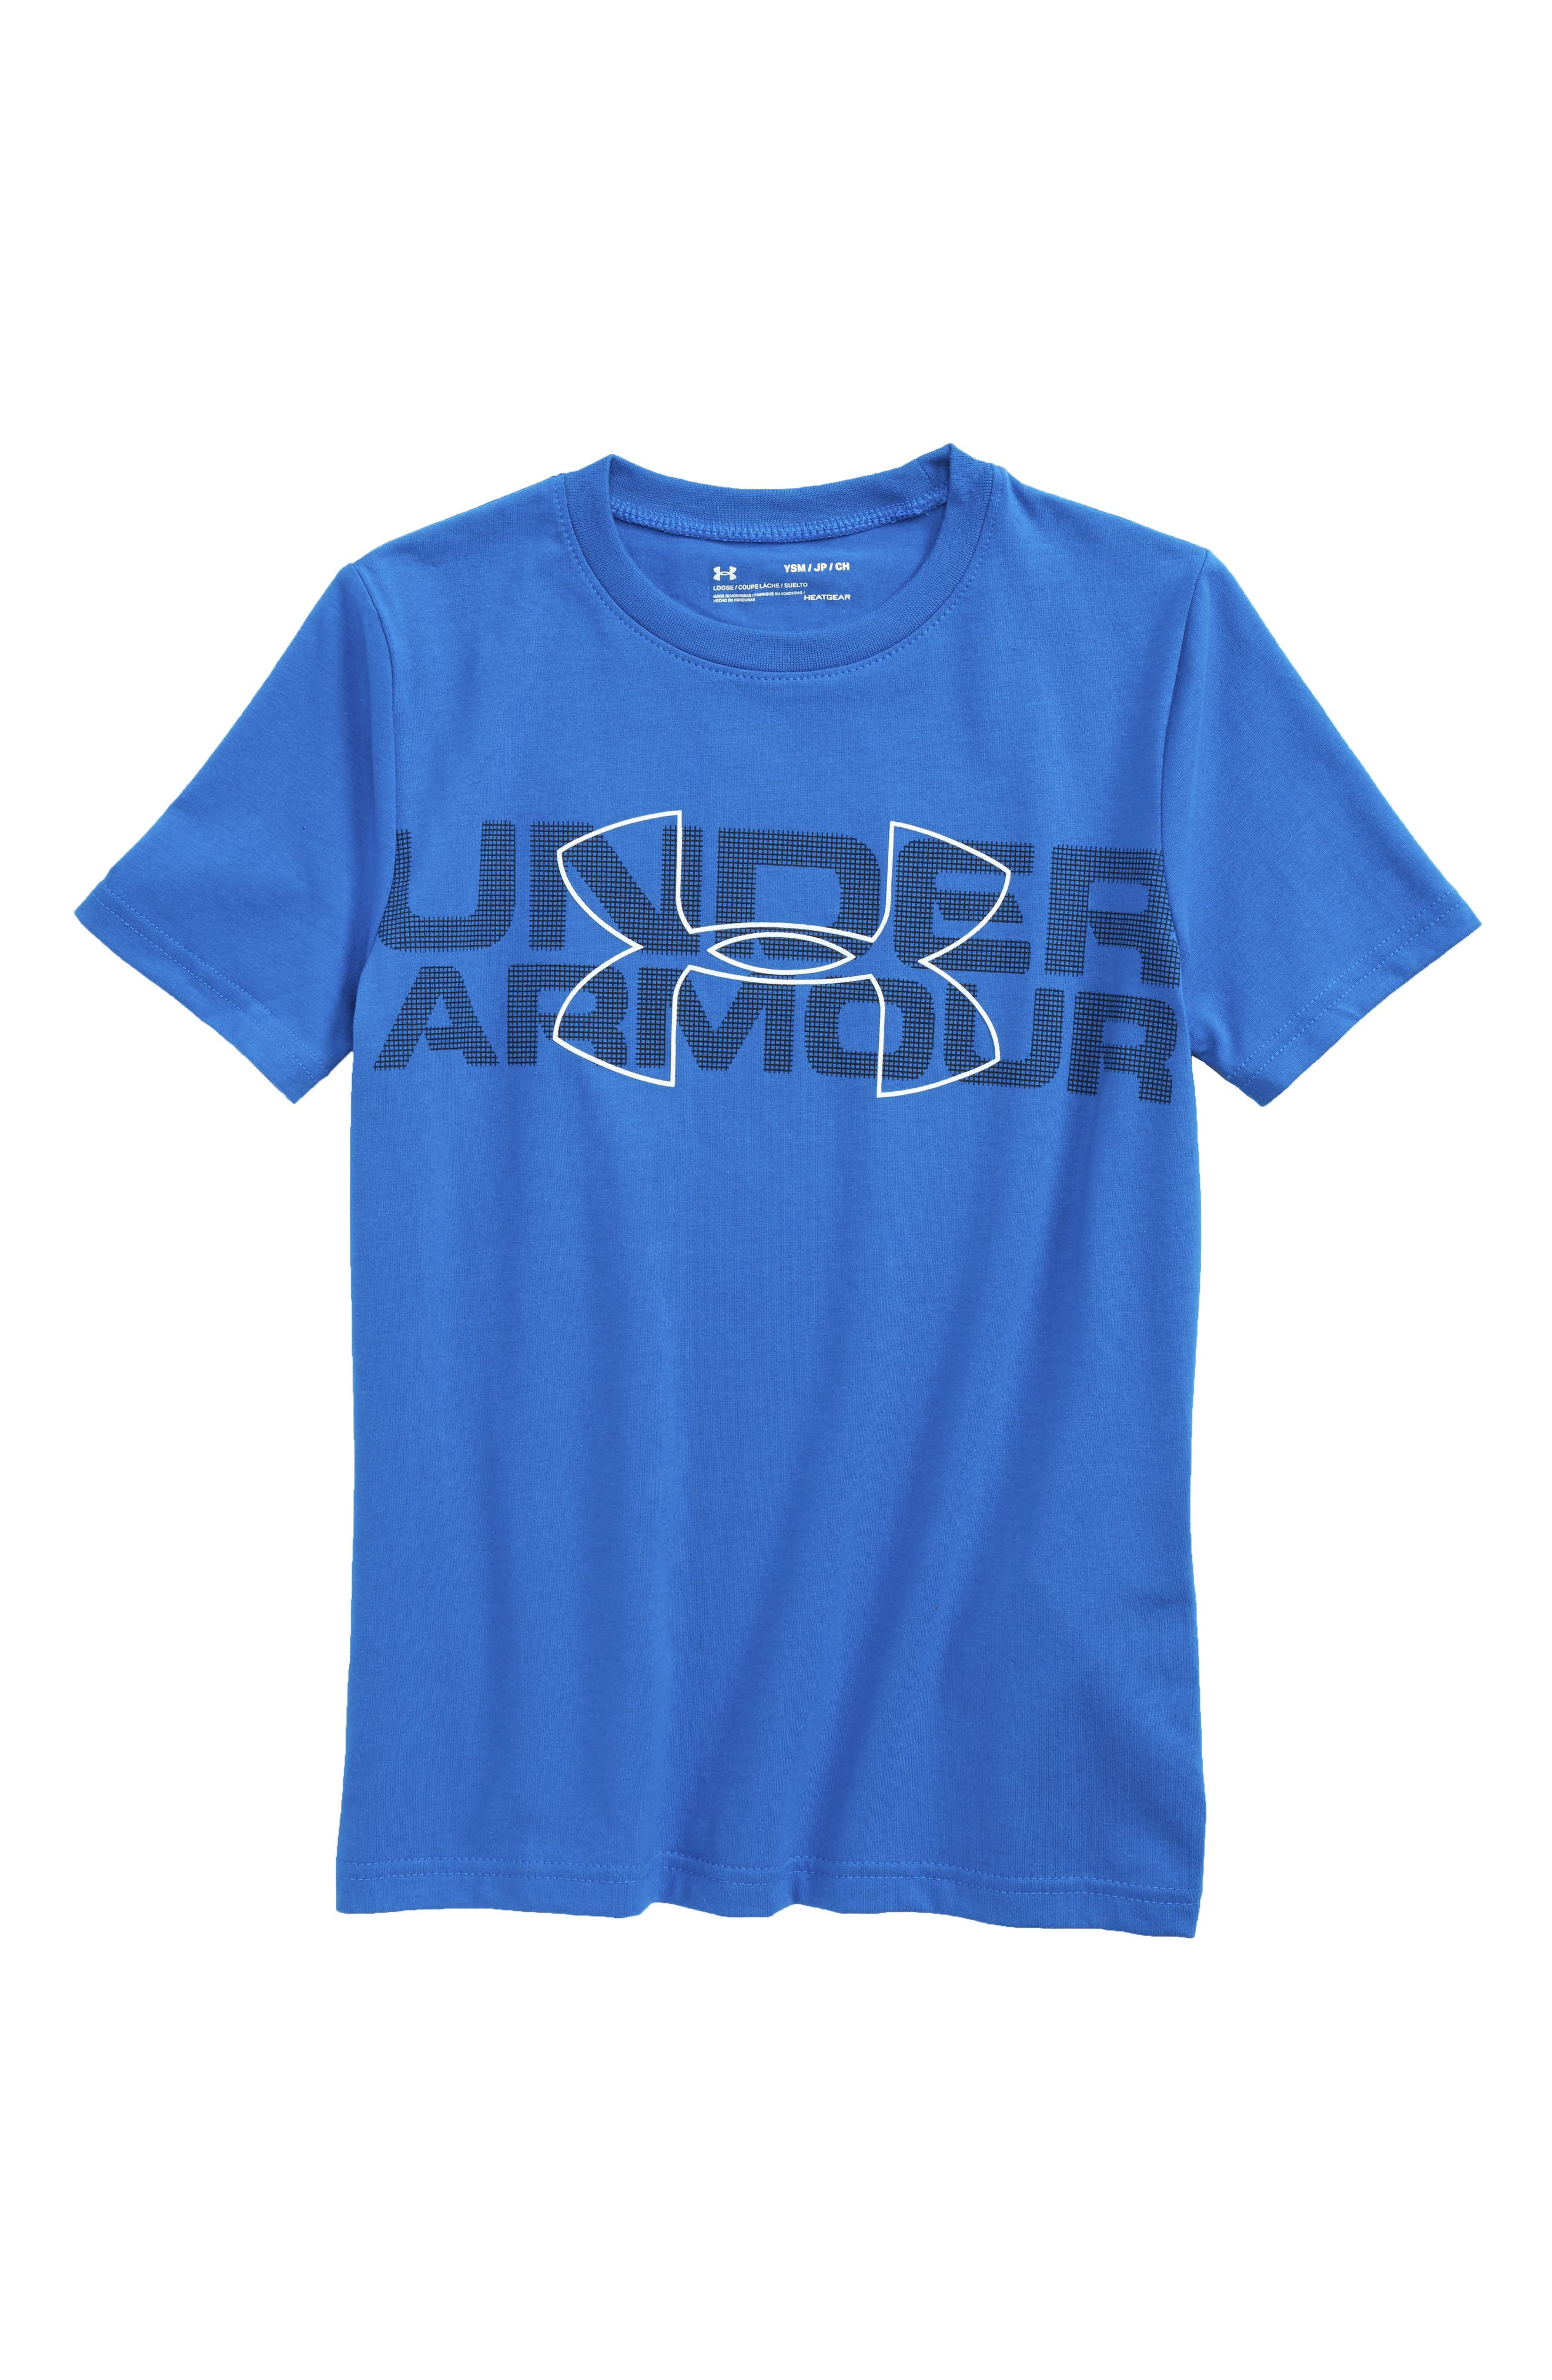 Duo Graphic T-Shirt,                         Main,                         color, Ultra Blue/ Black